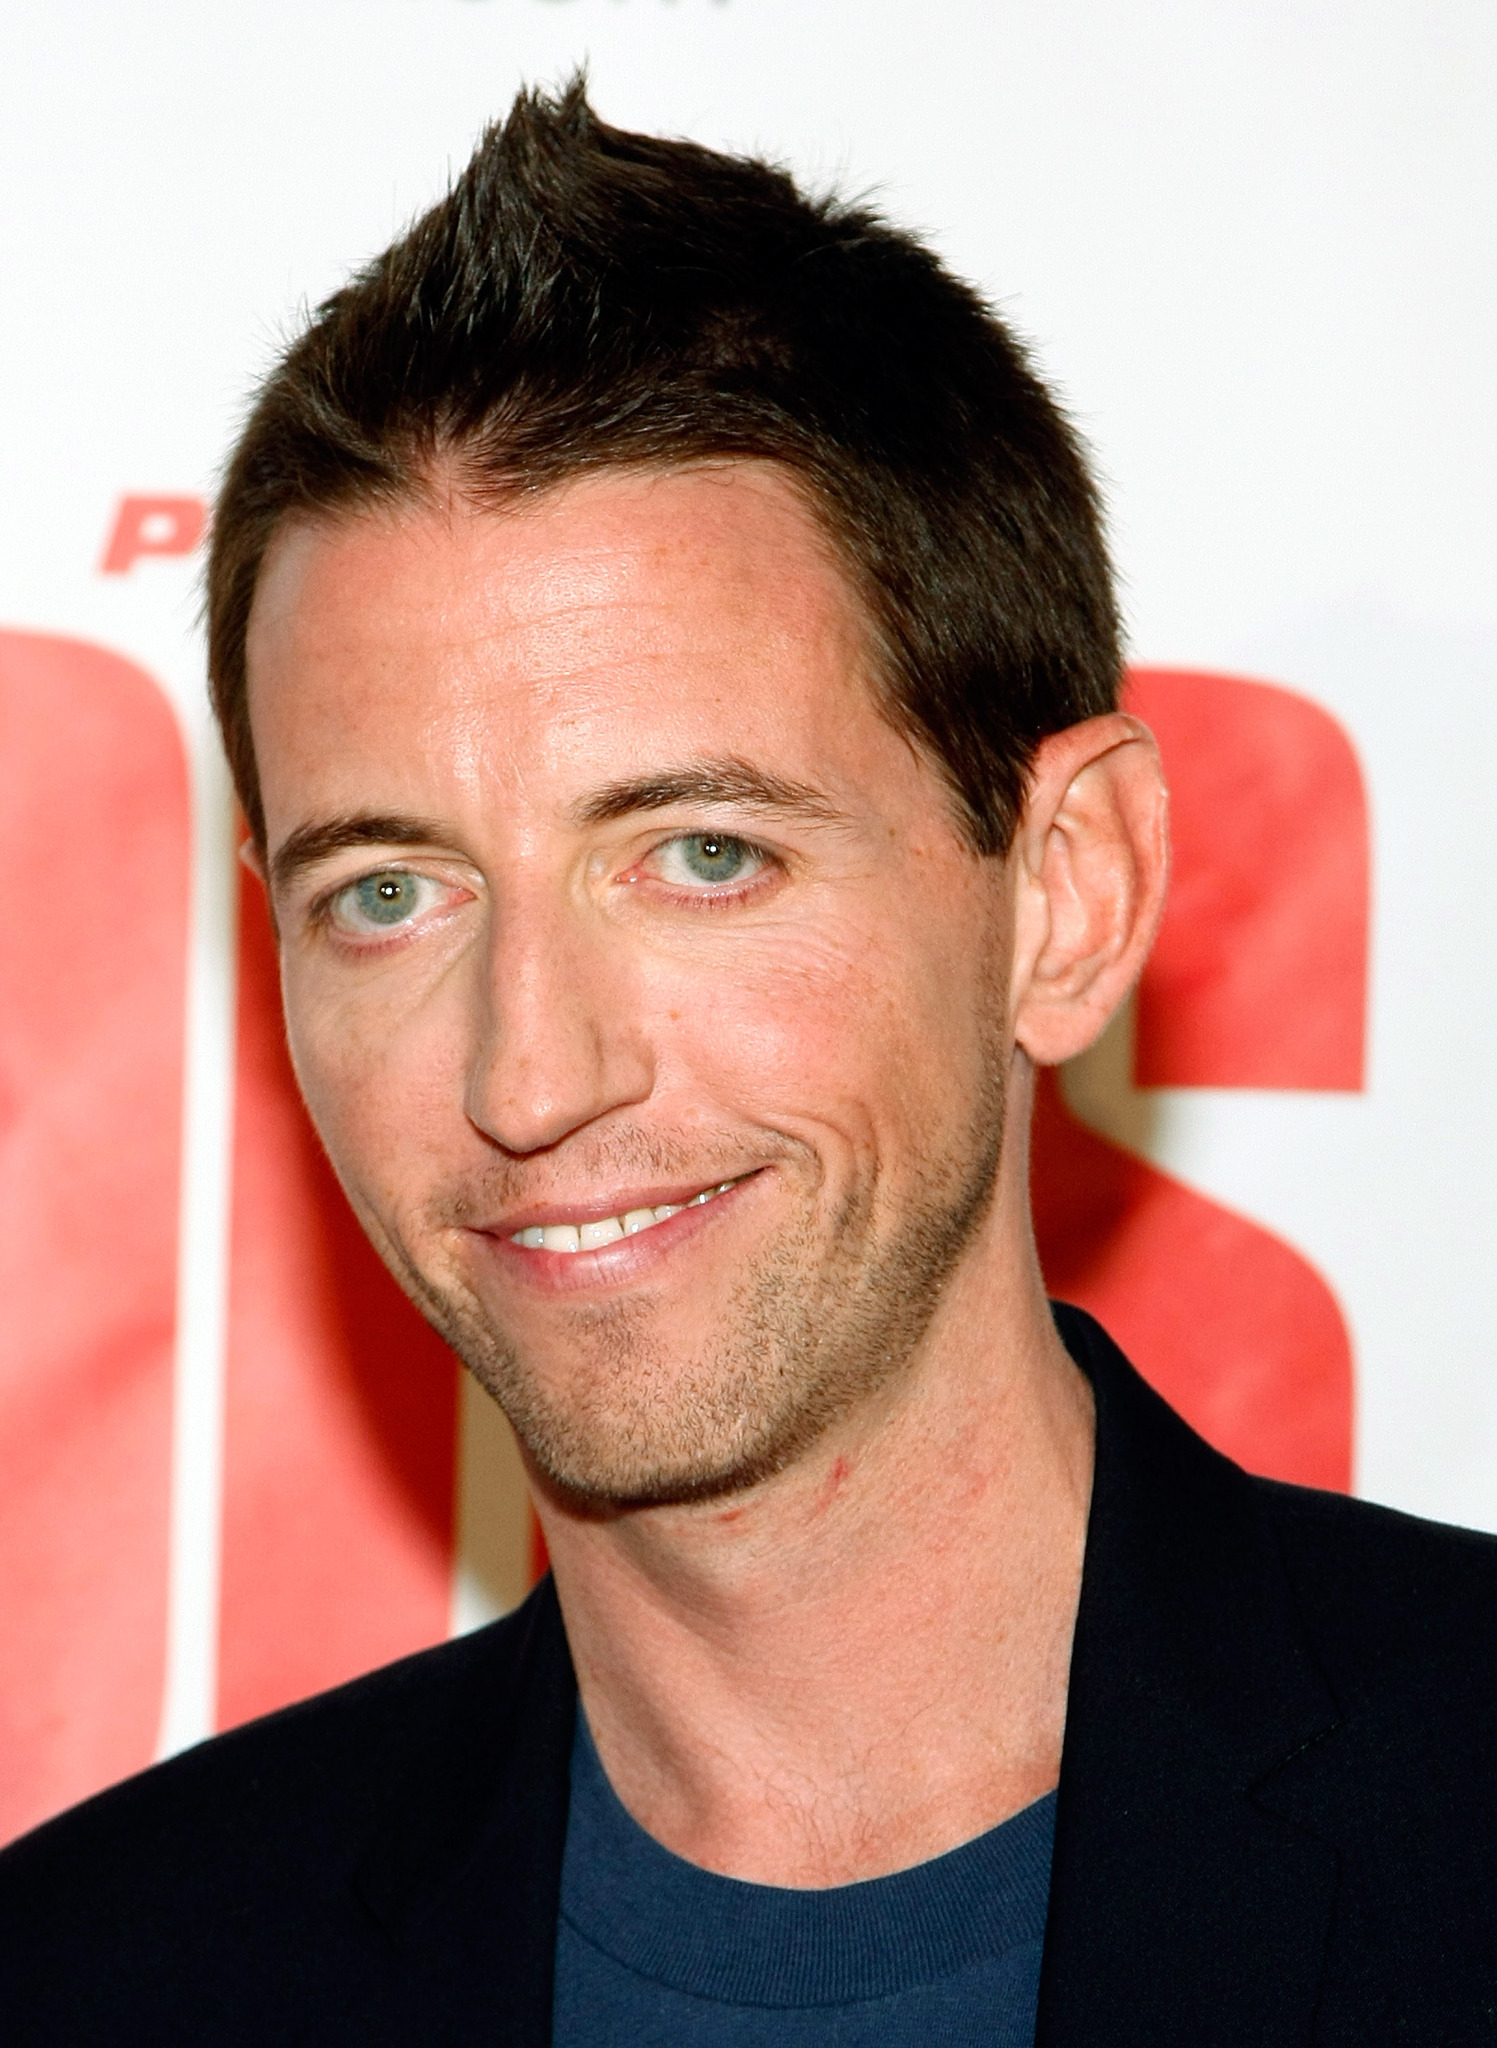 The 45-year old son of father (?) and mother(?) Neal Brennan in 2019 photo. Neal Brennan earned a  million dollar salary - leaving the net worth at  million in 2019